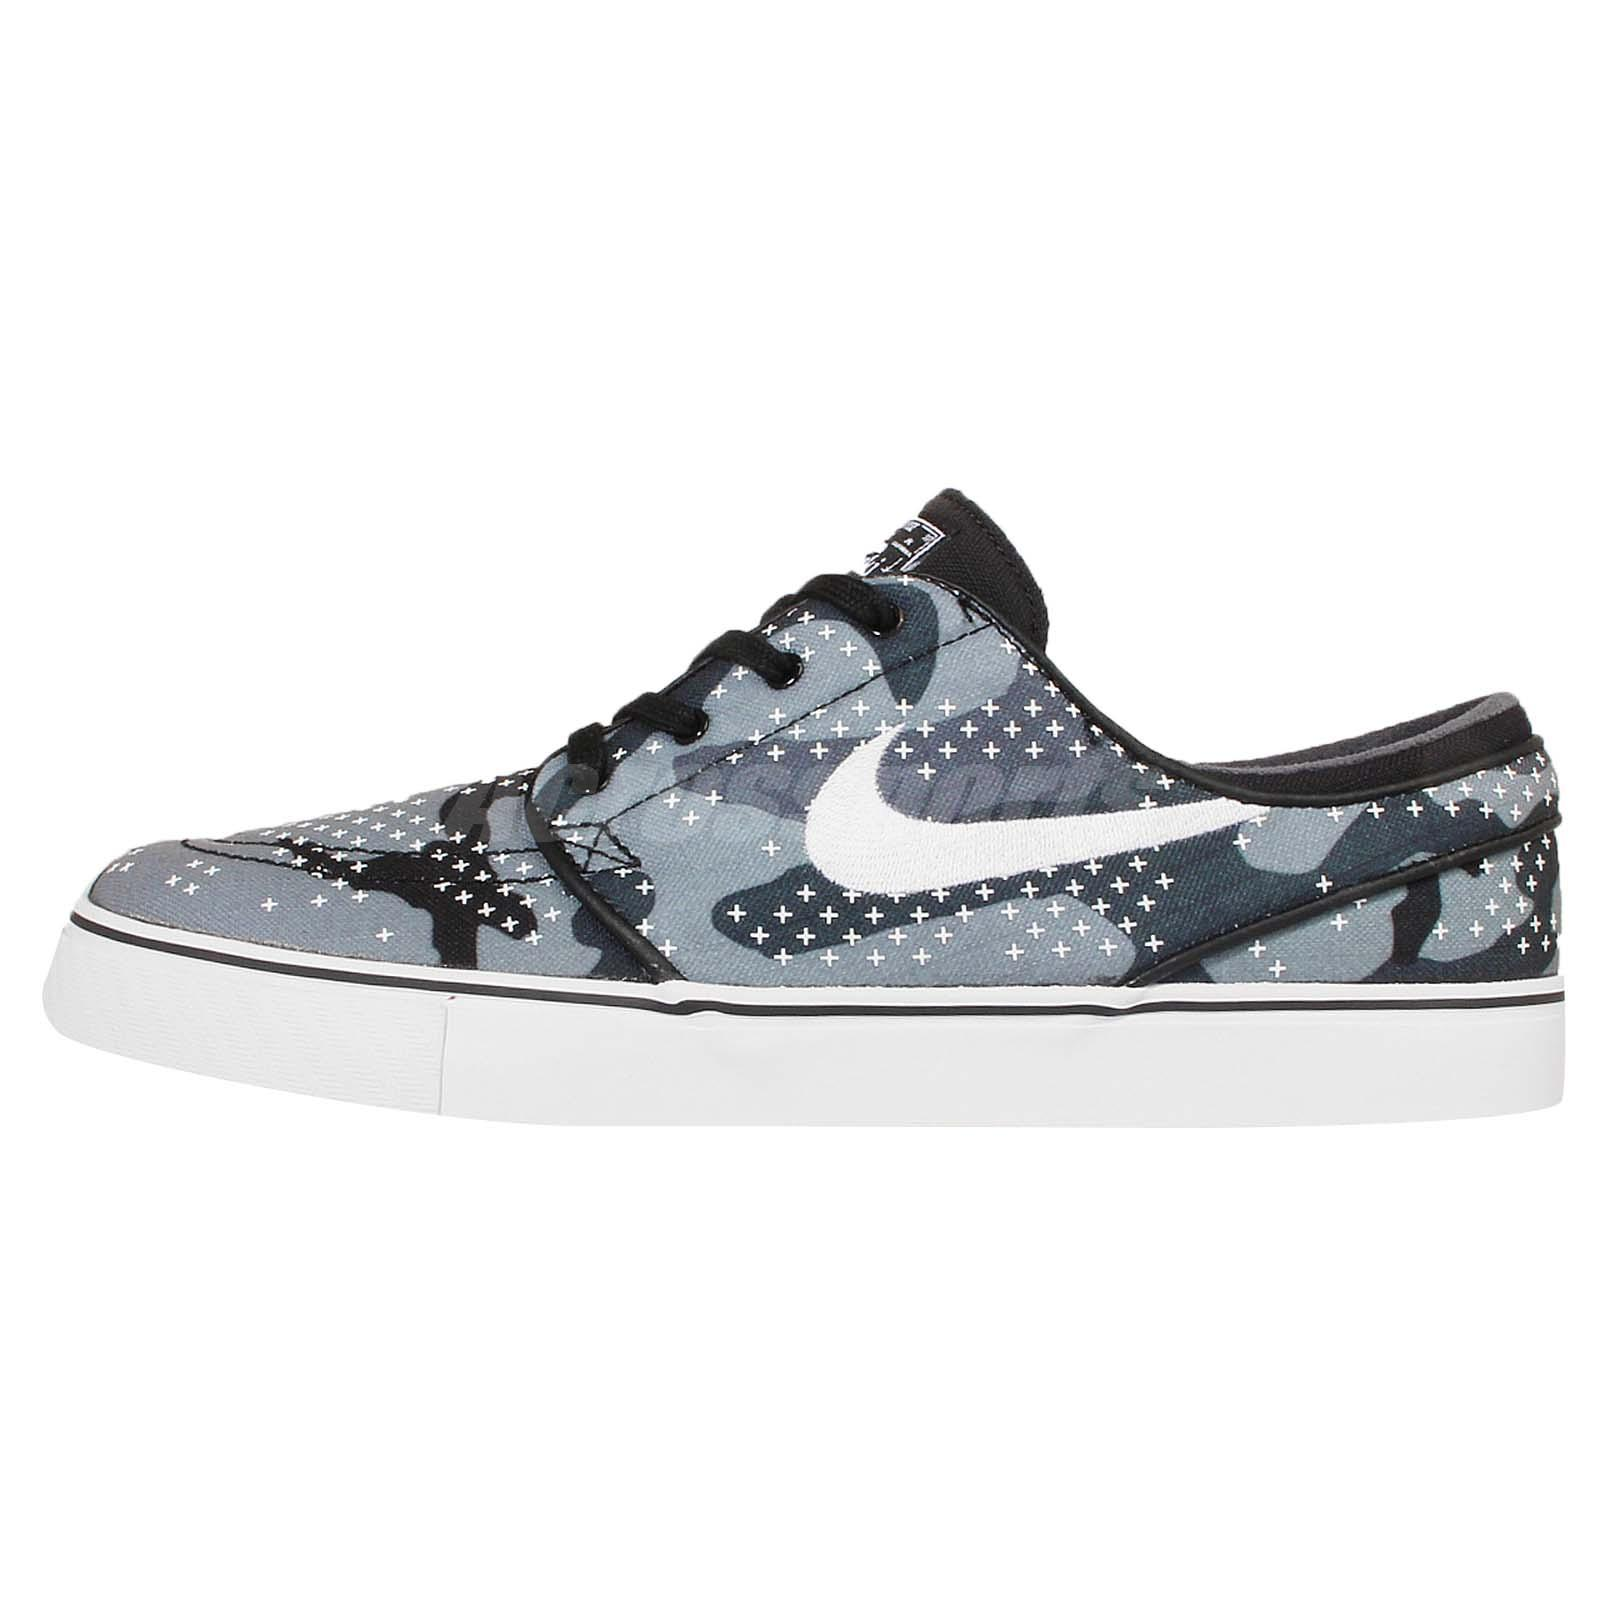 Nike Zoom Stefan Janoski CNVS PRM Grey Camo Mens Skateboarding Shoes  705190-010